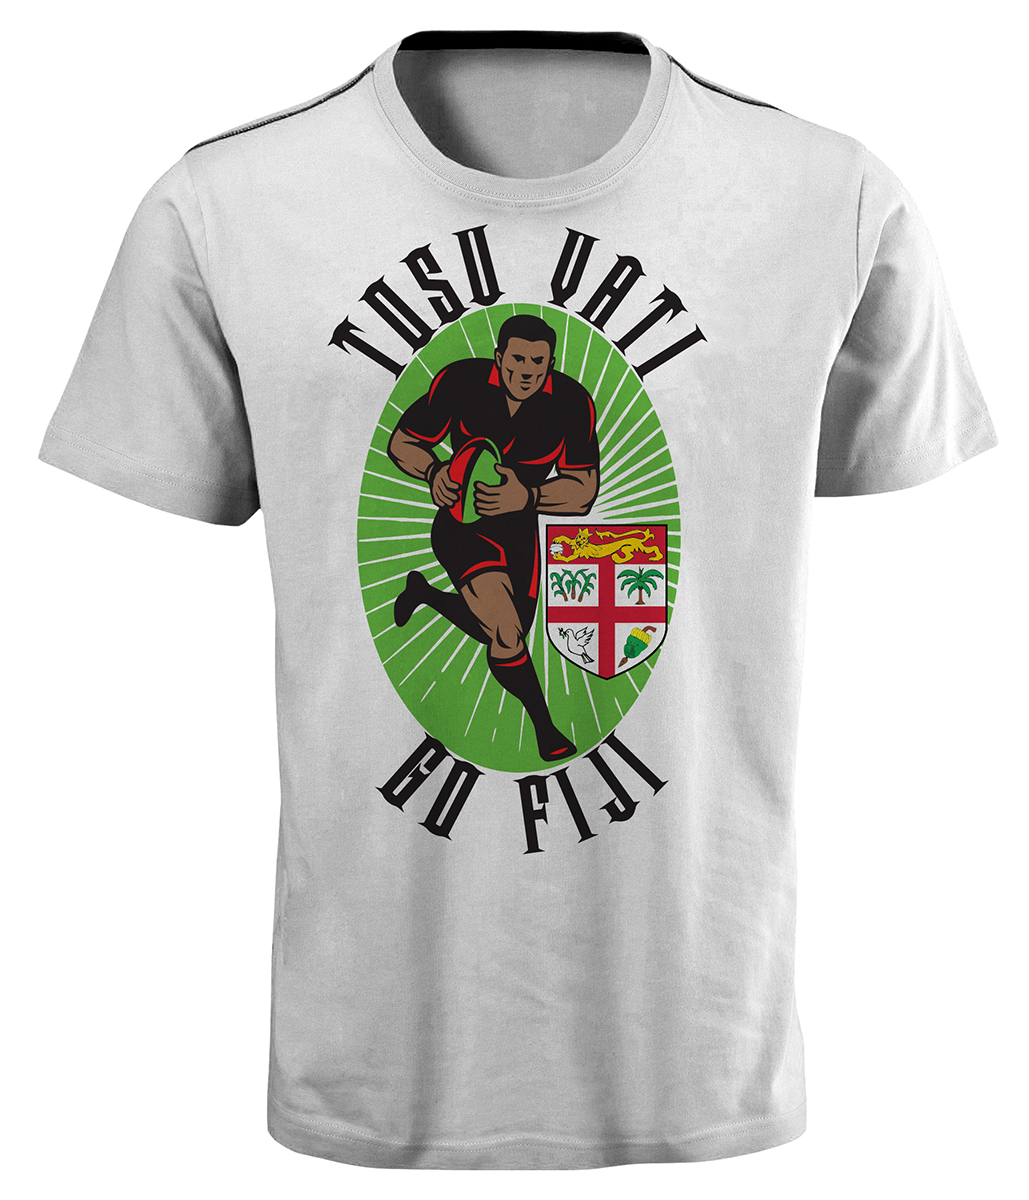 Design t shirt rugby - T Shirt Design By Fcurtis For A T Shirt For Fiji Rugby 7s Team